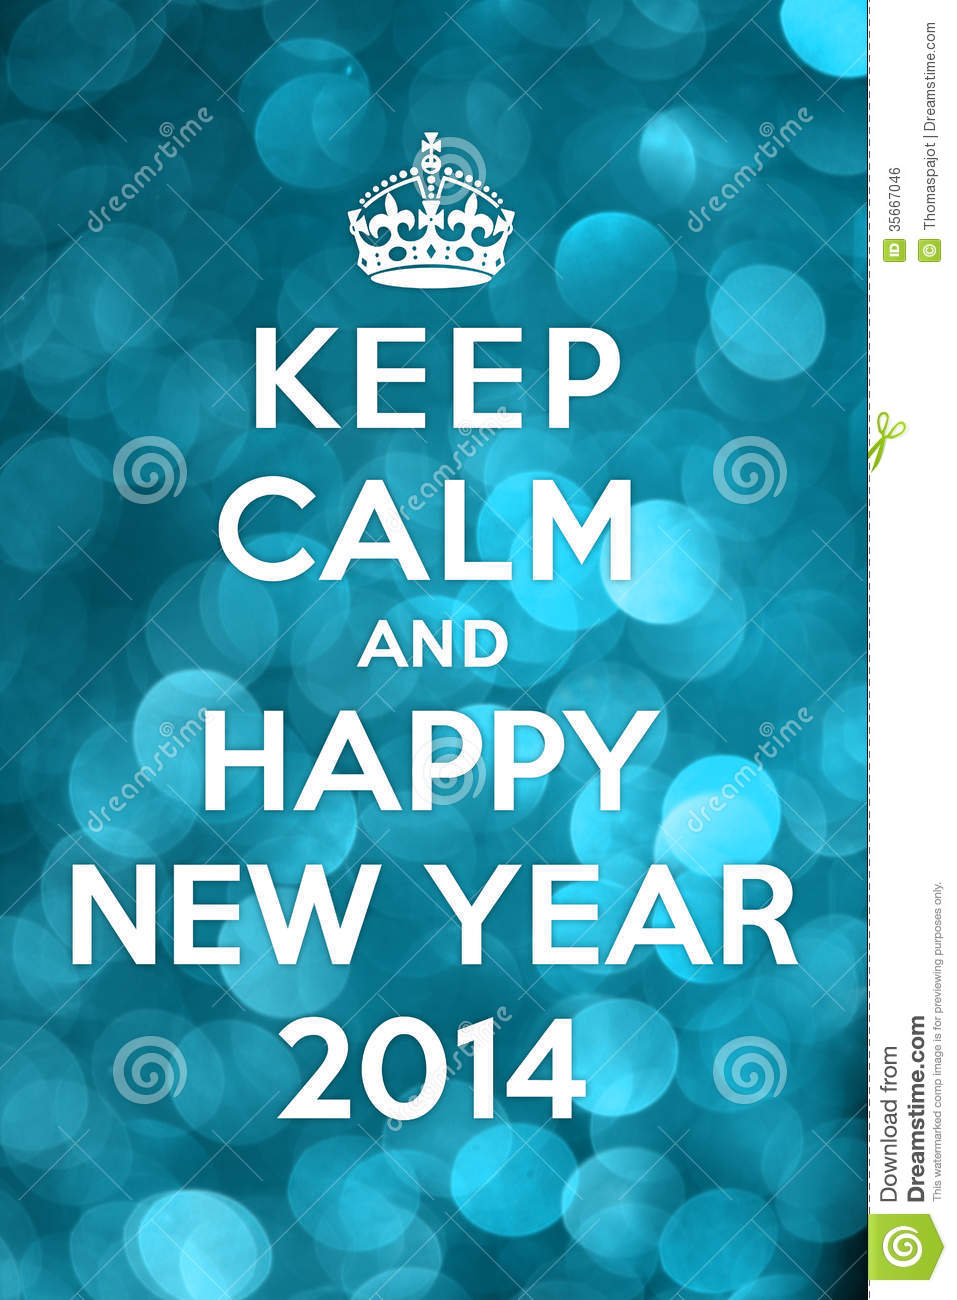 Keep Calm And Happy New Year 2014 Stock Photo